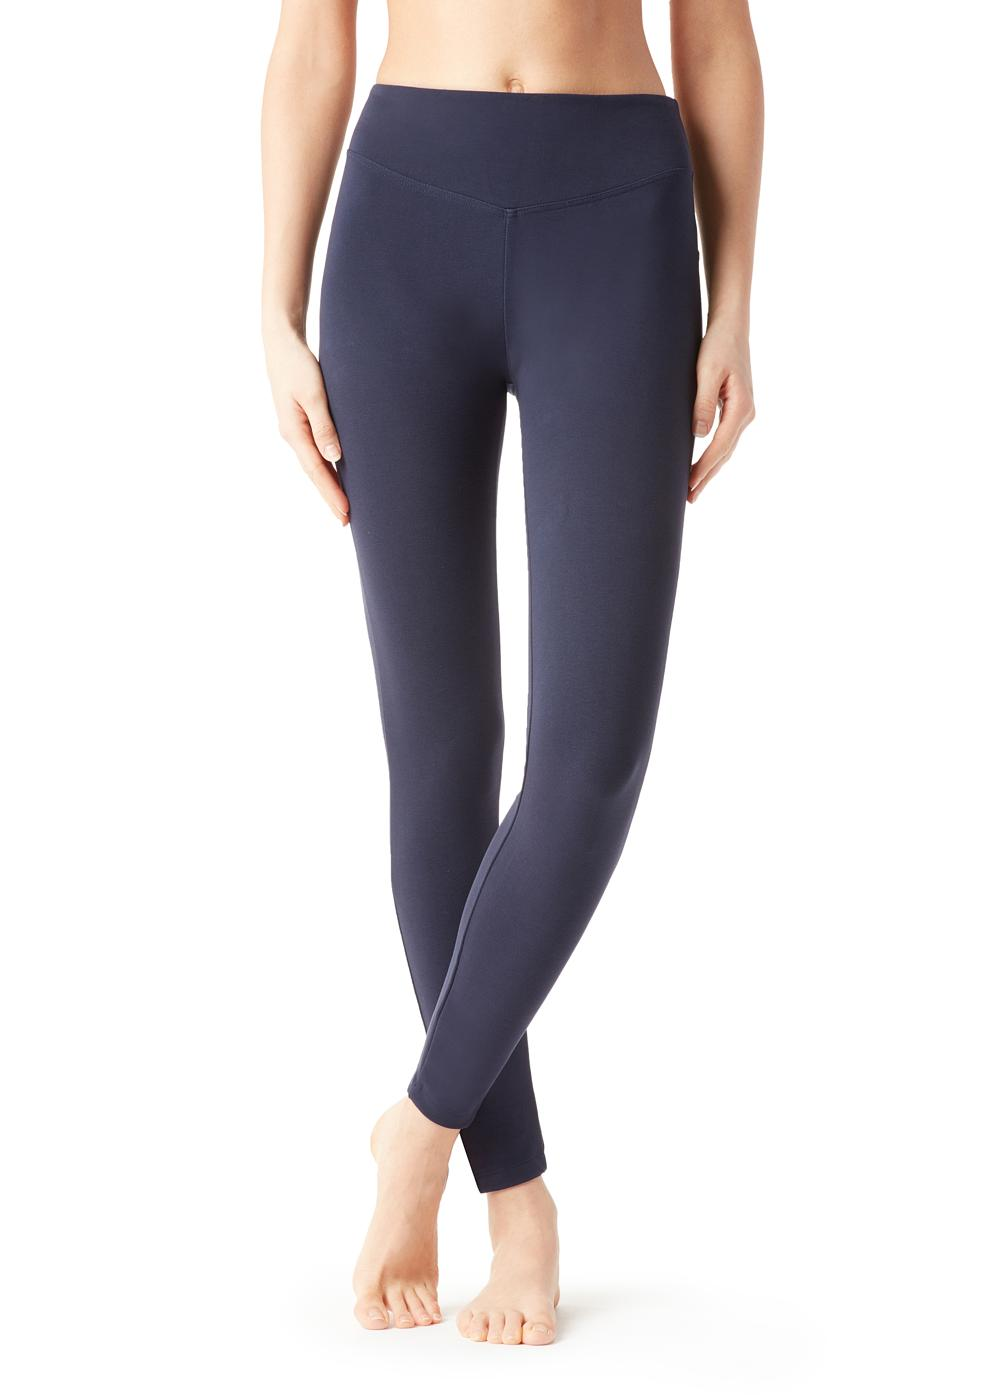 Total Shaper Leggings